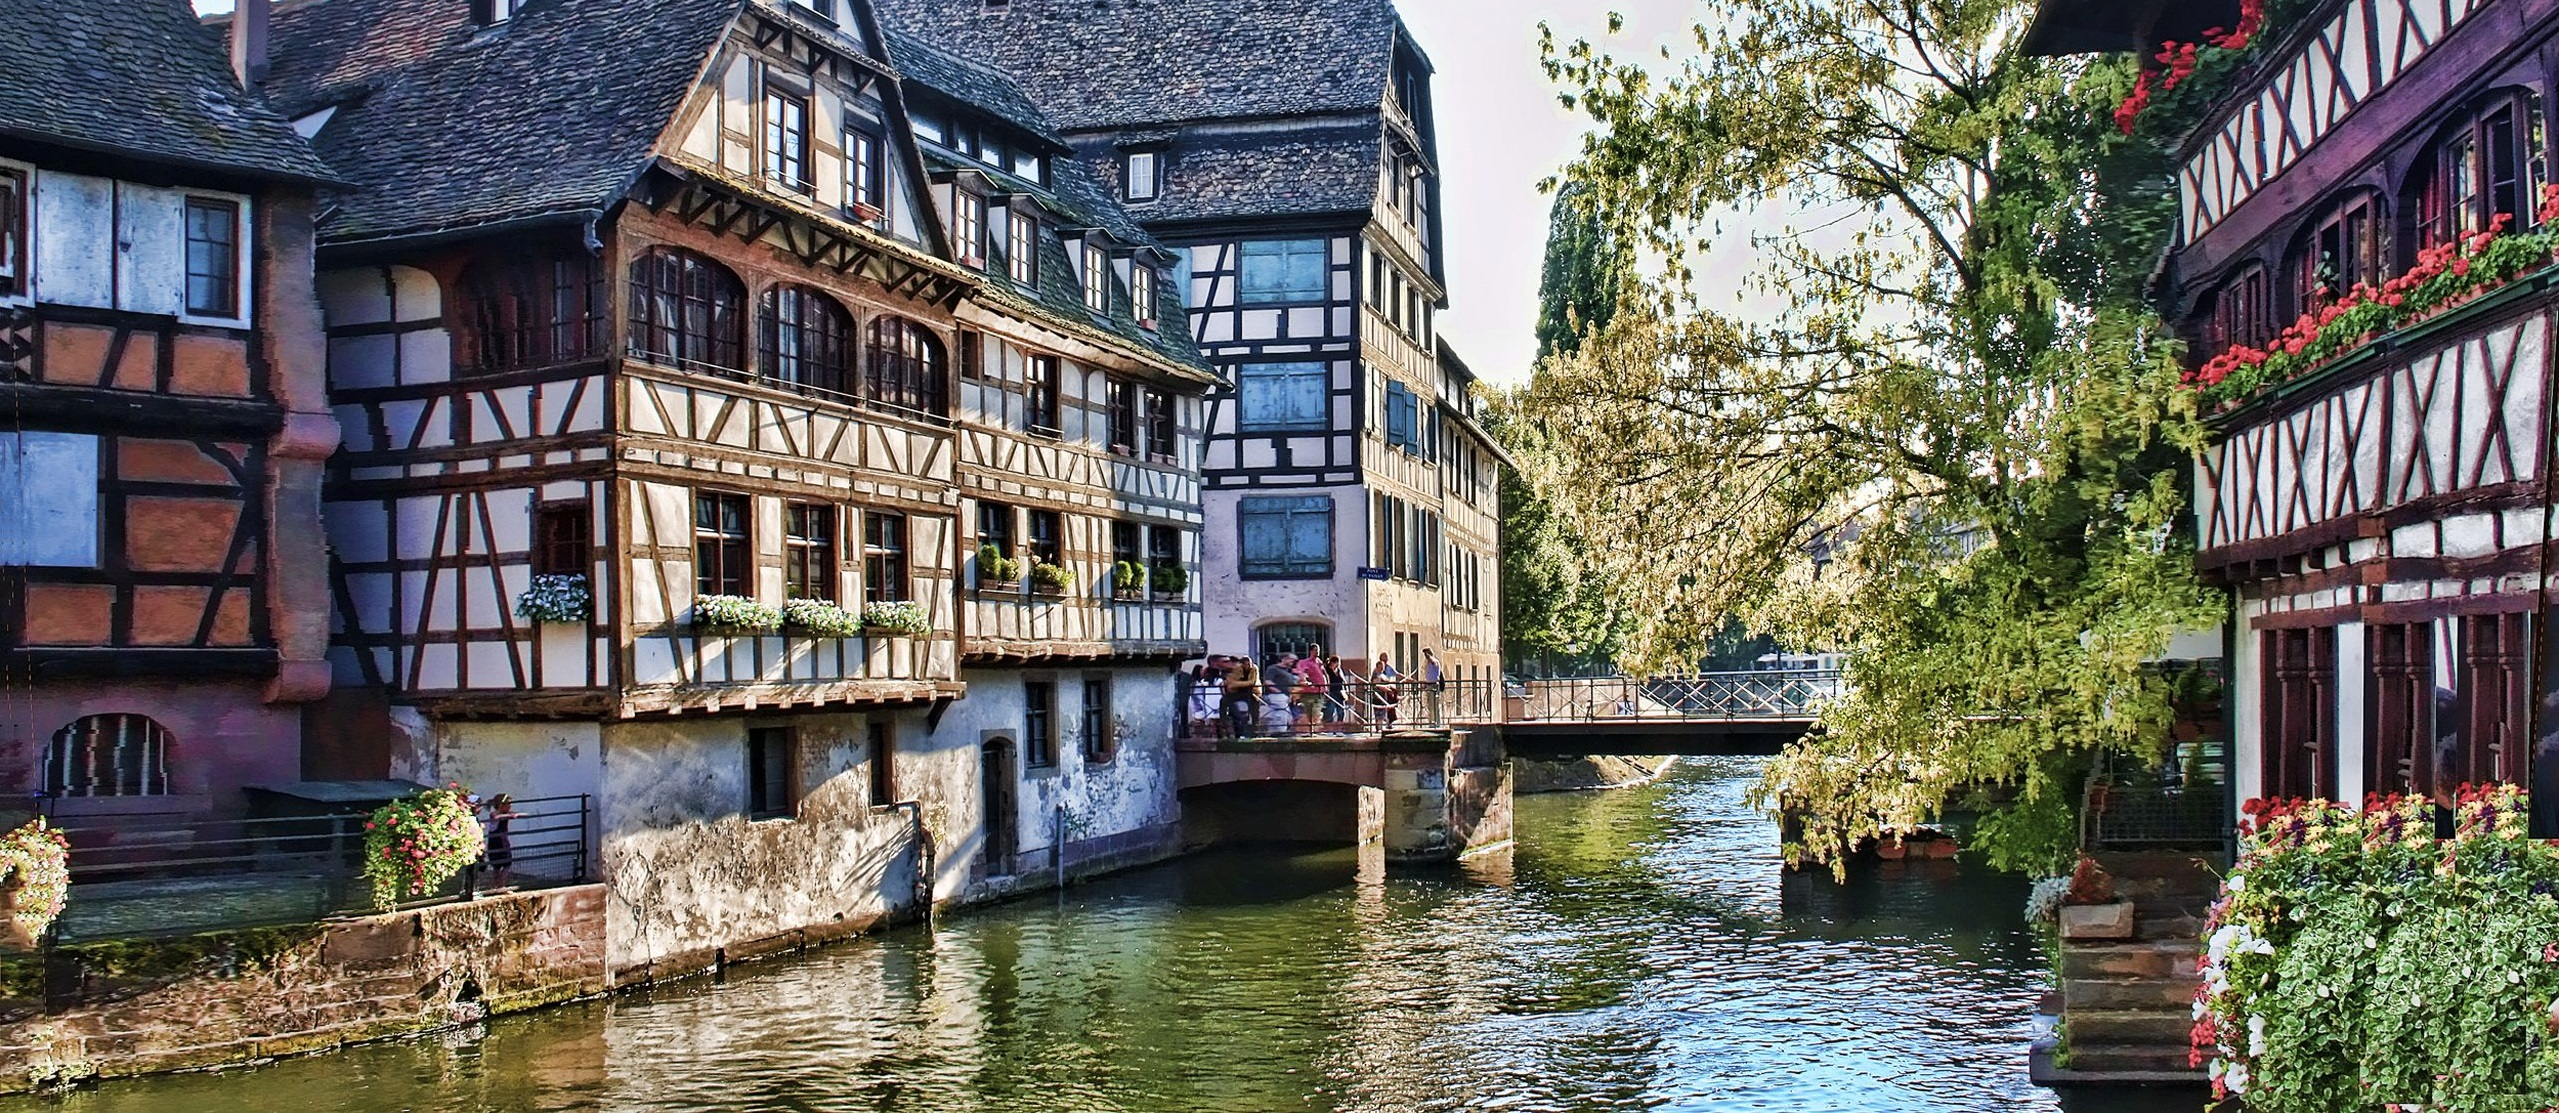 Study Abroad in Strasbourg, France